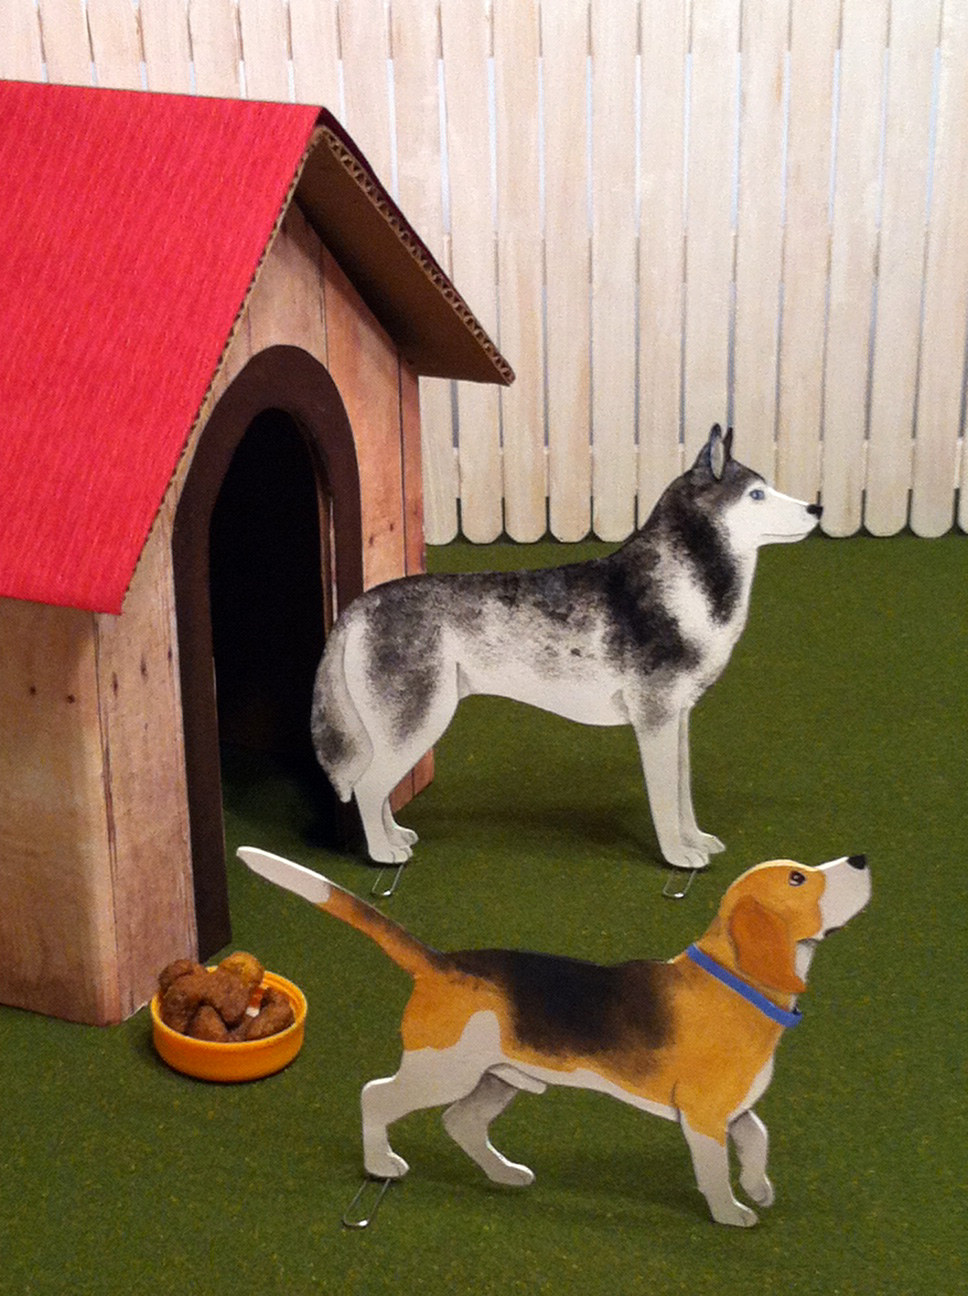 Husky Dog and Beagle Pop Out + Paint Dogs and Cats